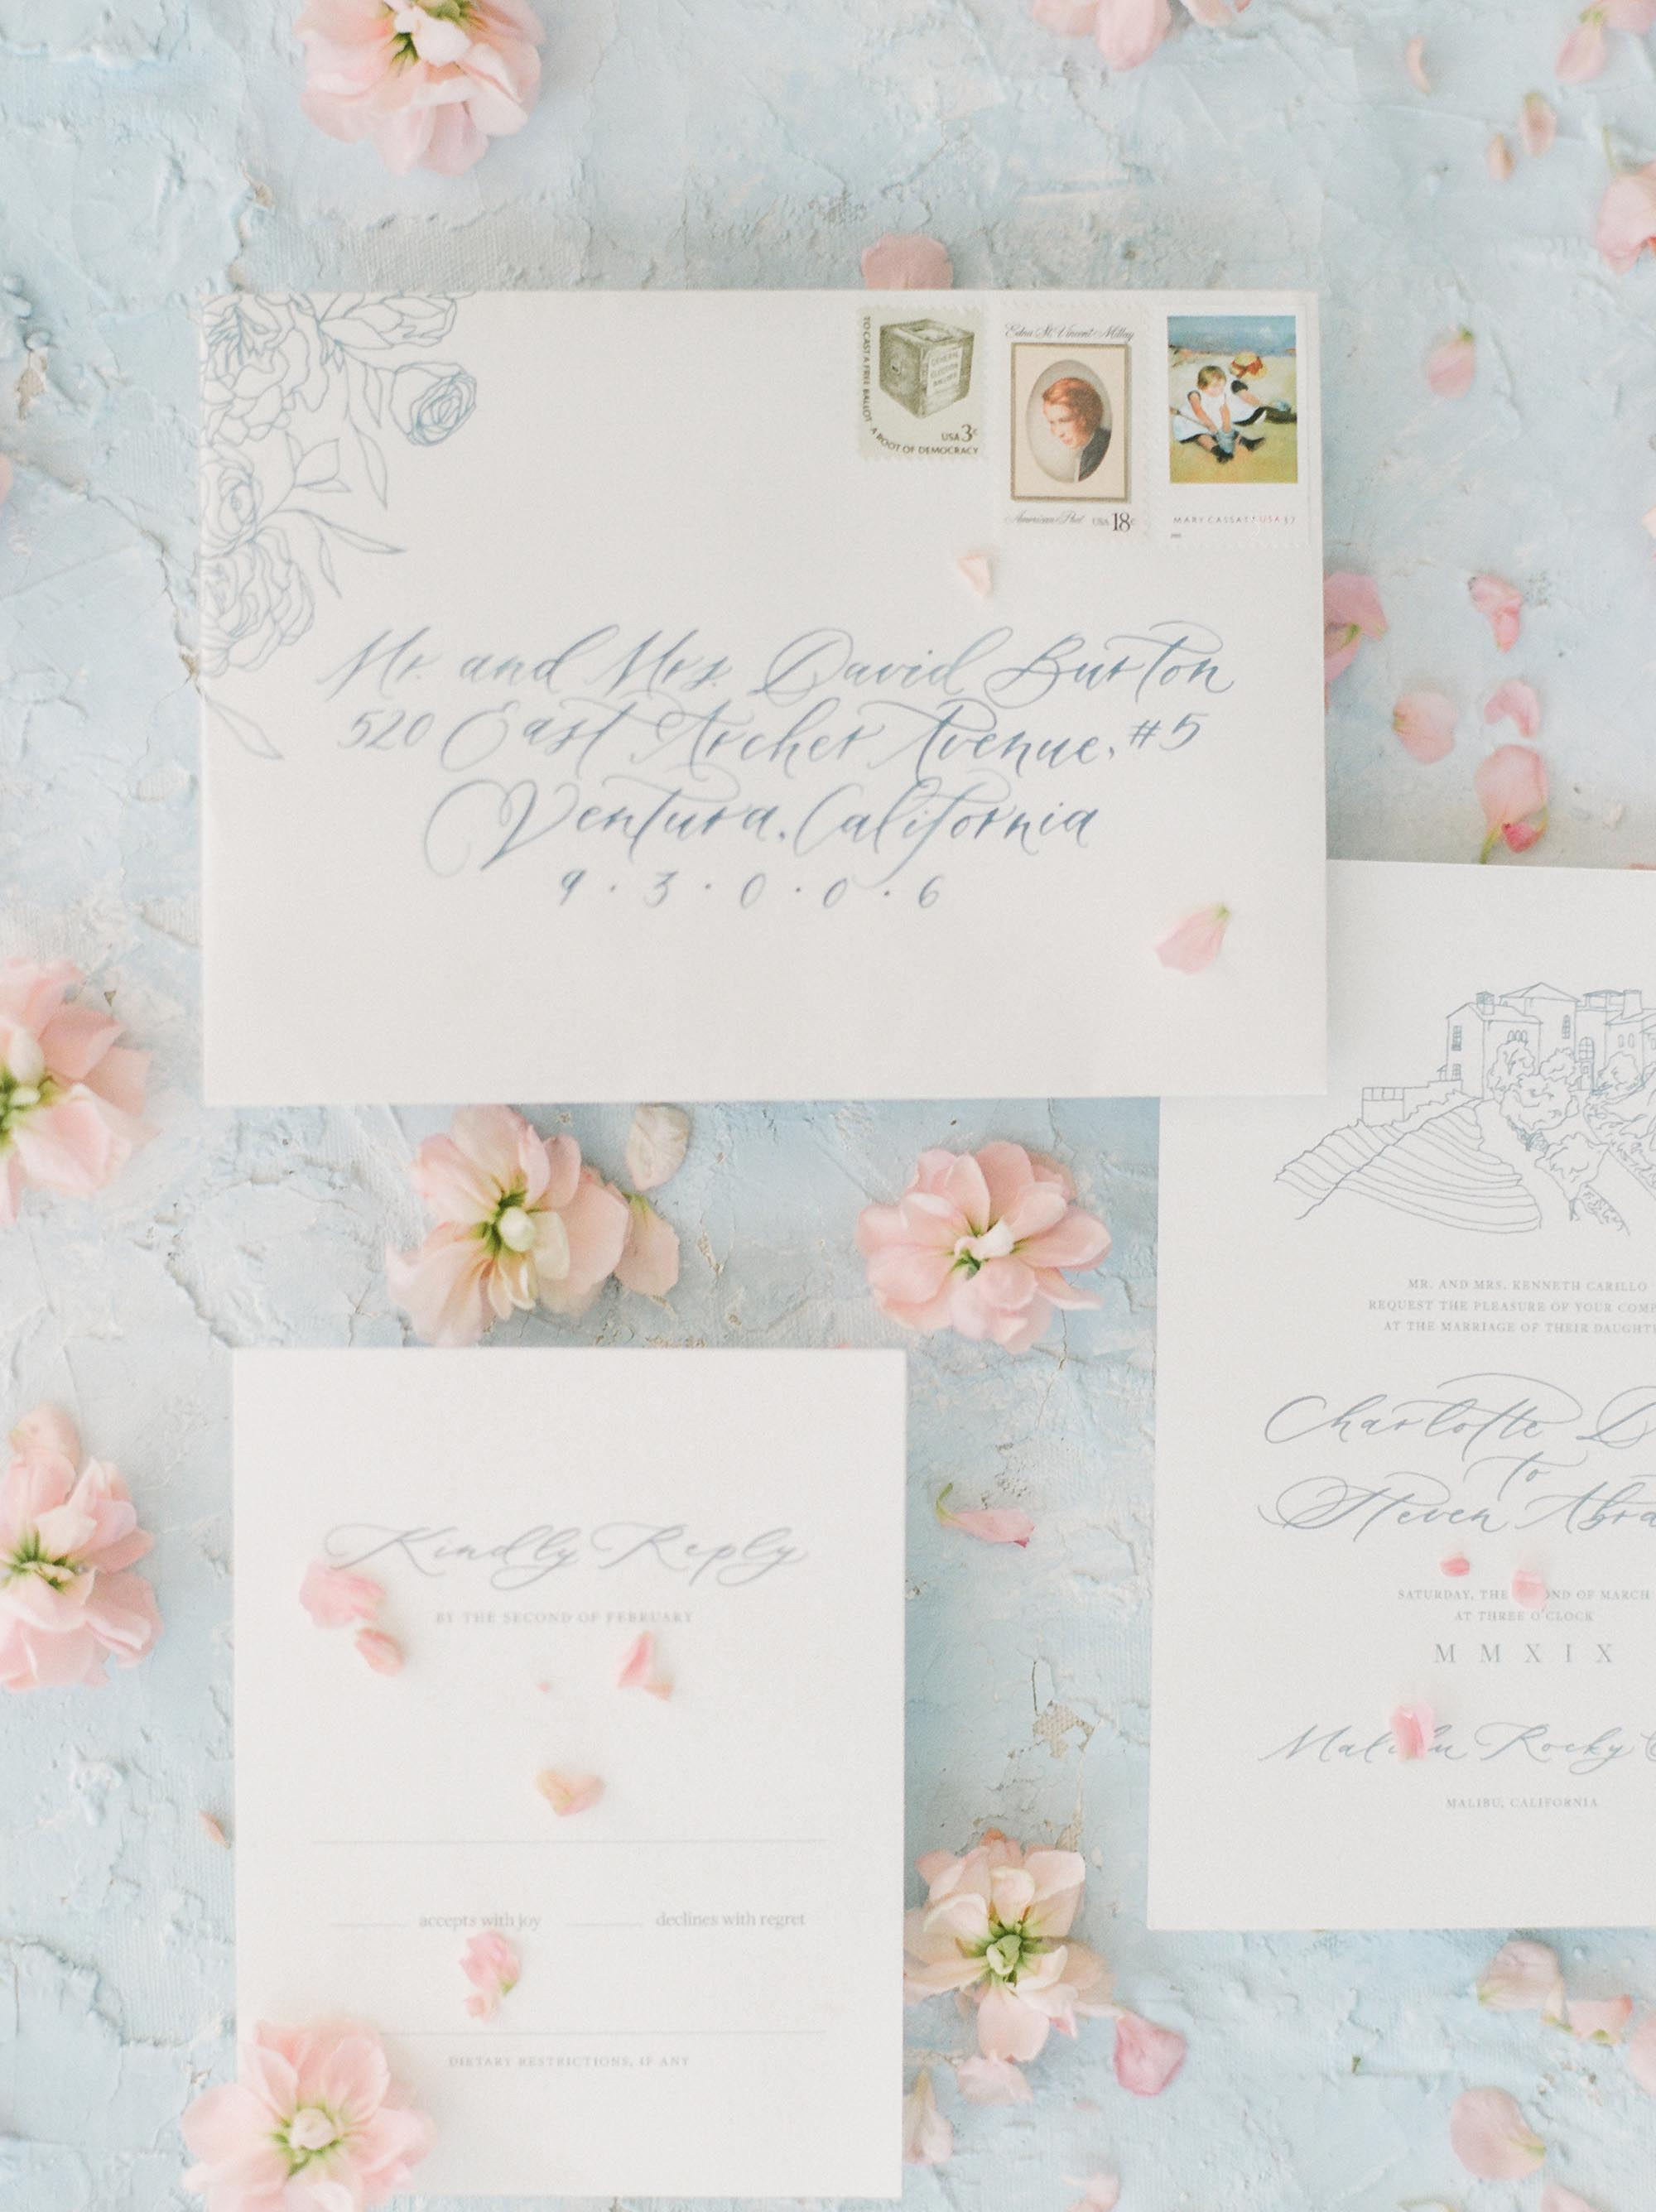 Romantic and light custom wedding stationery for spring Malibu wedding. Floral illustrations, venue illustrations, and calligraphy. Invitations by Caitlin O'Bryant Design. Photo by Julie Paisley.